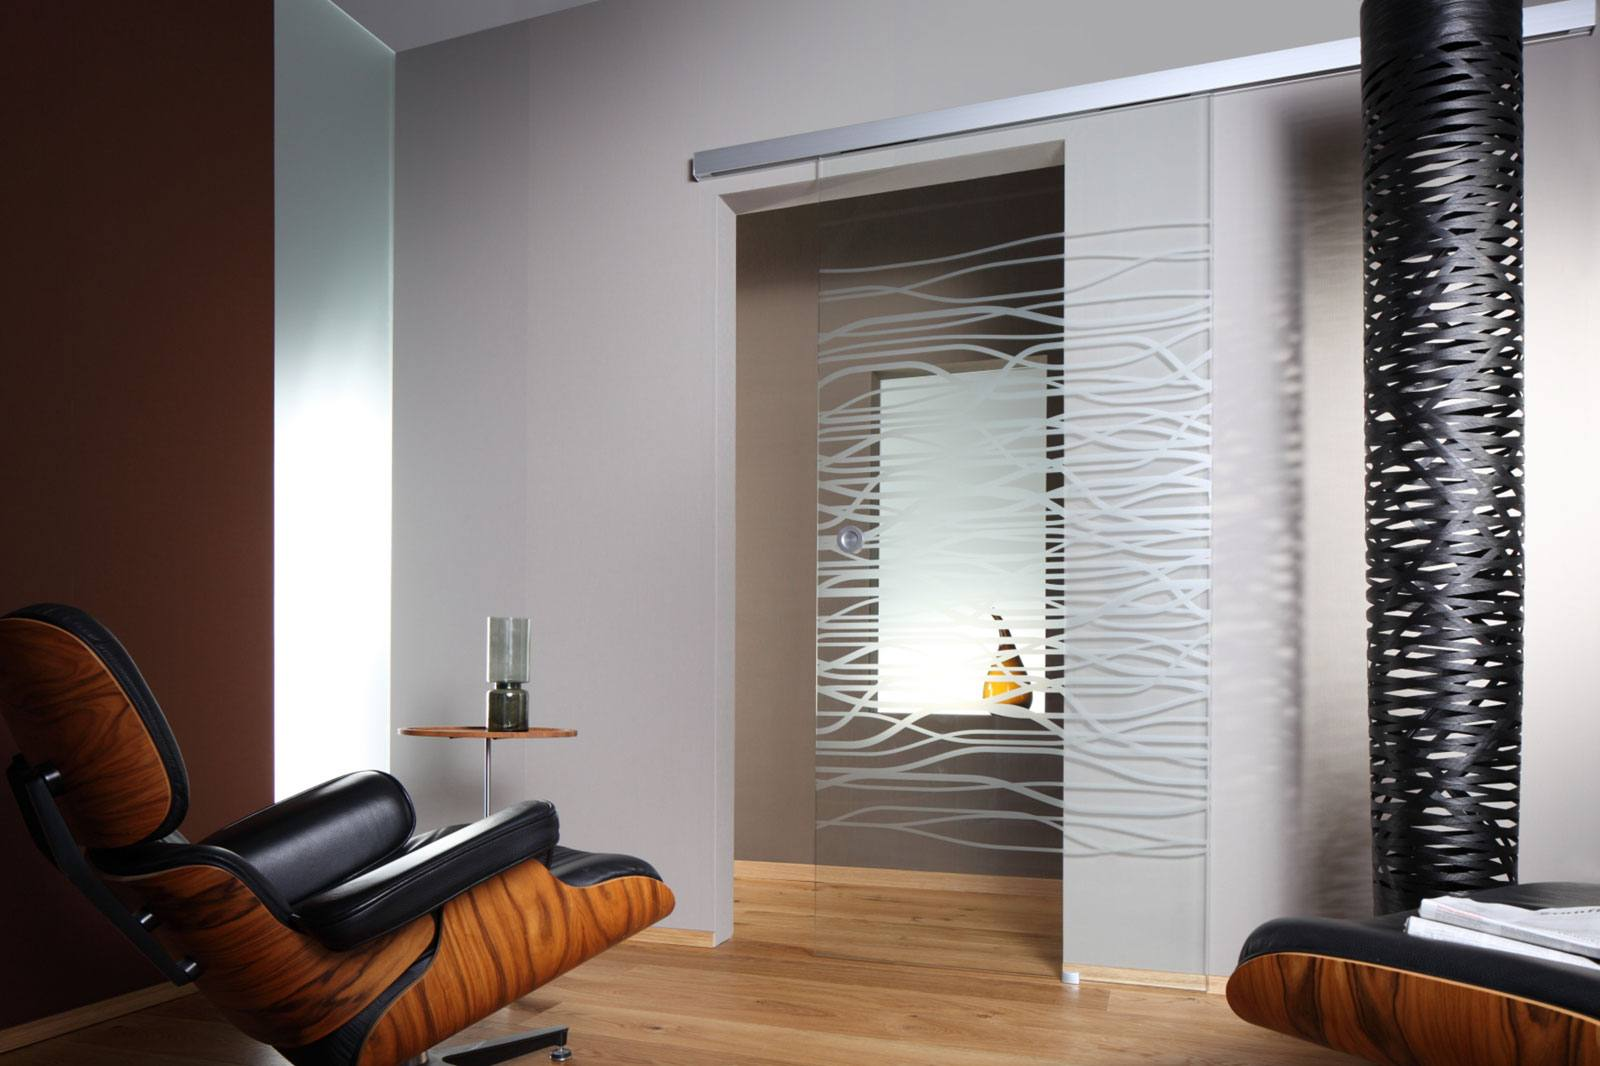 Interior Glass Doors: Best Design Ideas and Application. Nice relaxing zone with the almost invisible sliding panel